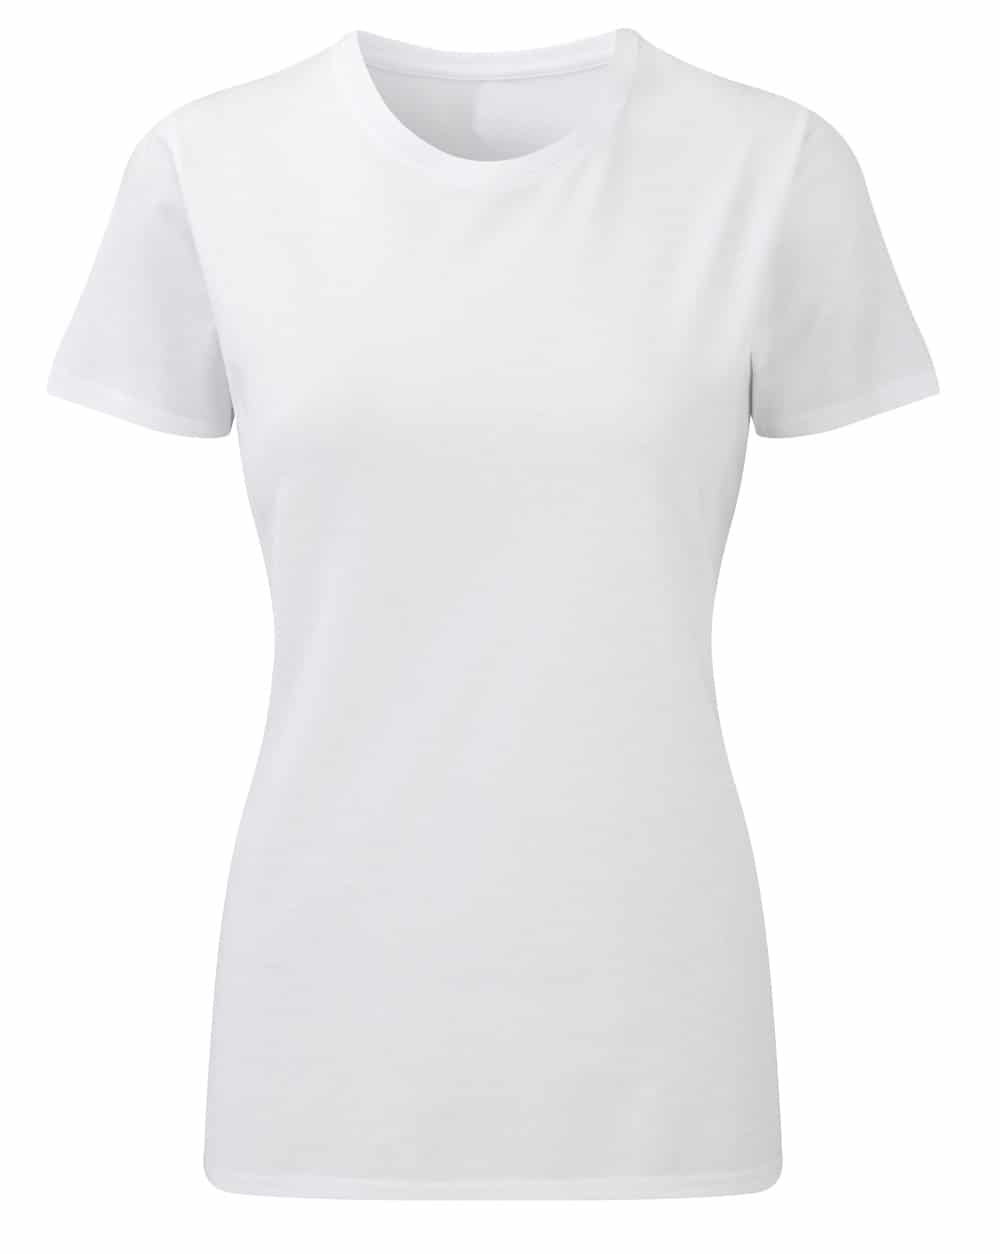 T-ACTIVE-F-B-L__IMG__HD__T-Shirt20Polyester20Blanc20Femme20Taille20L__1__1.jpg